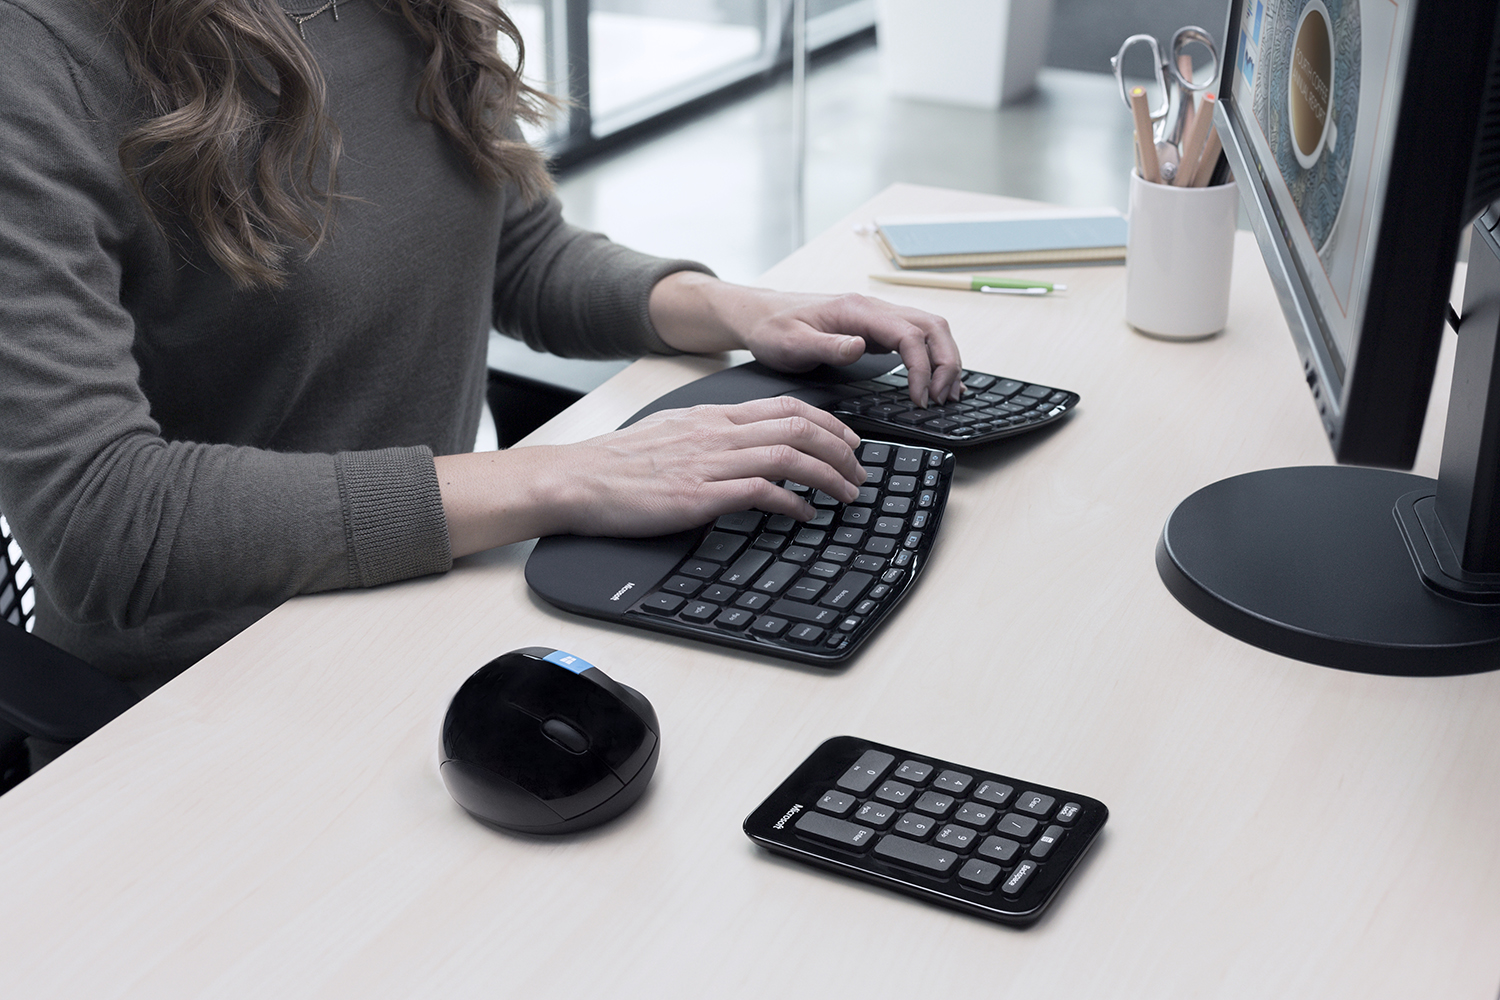 microsoft sculpt ergonomic wireless desktop keyboardkeypadmouse combo black by office depot. Black Bedroom Furniture Sets. Home Design Ideas